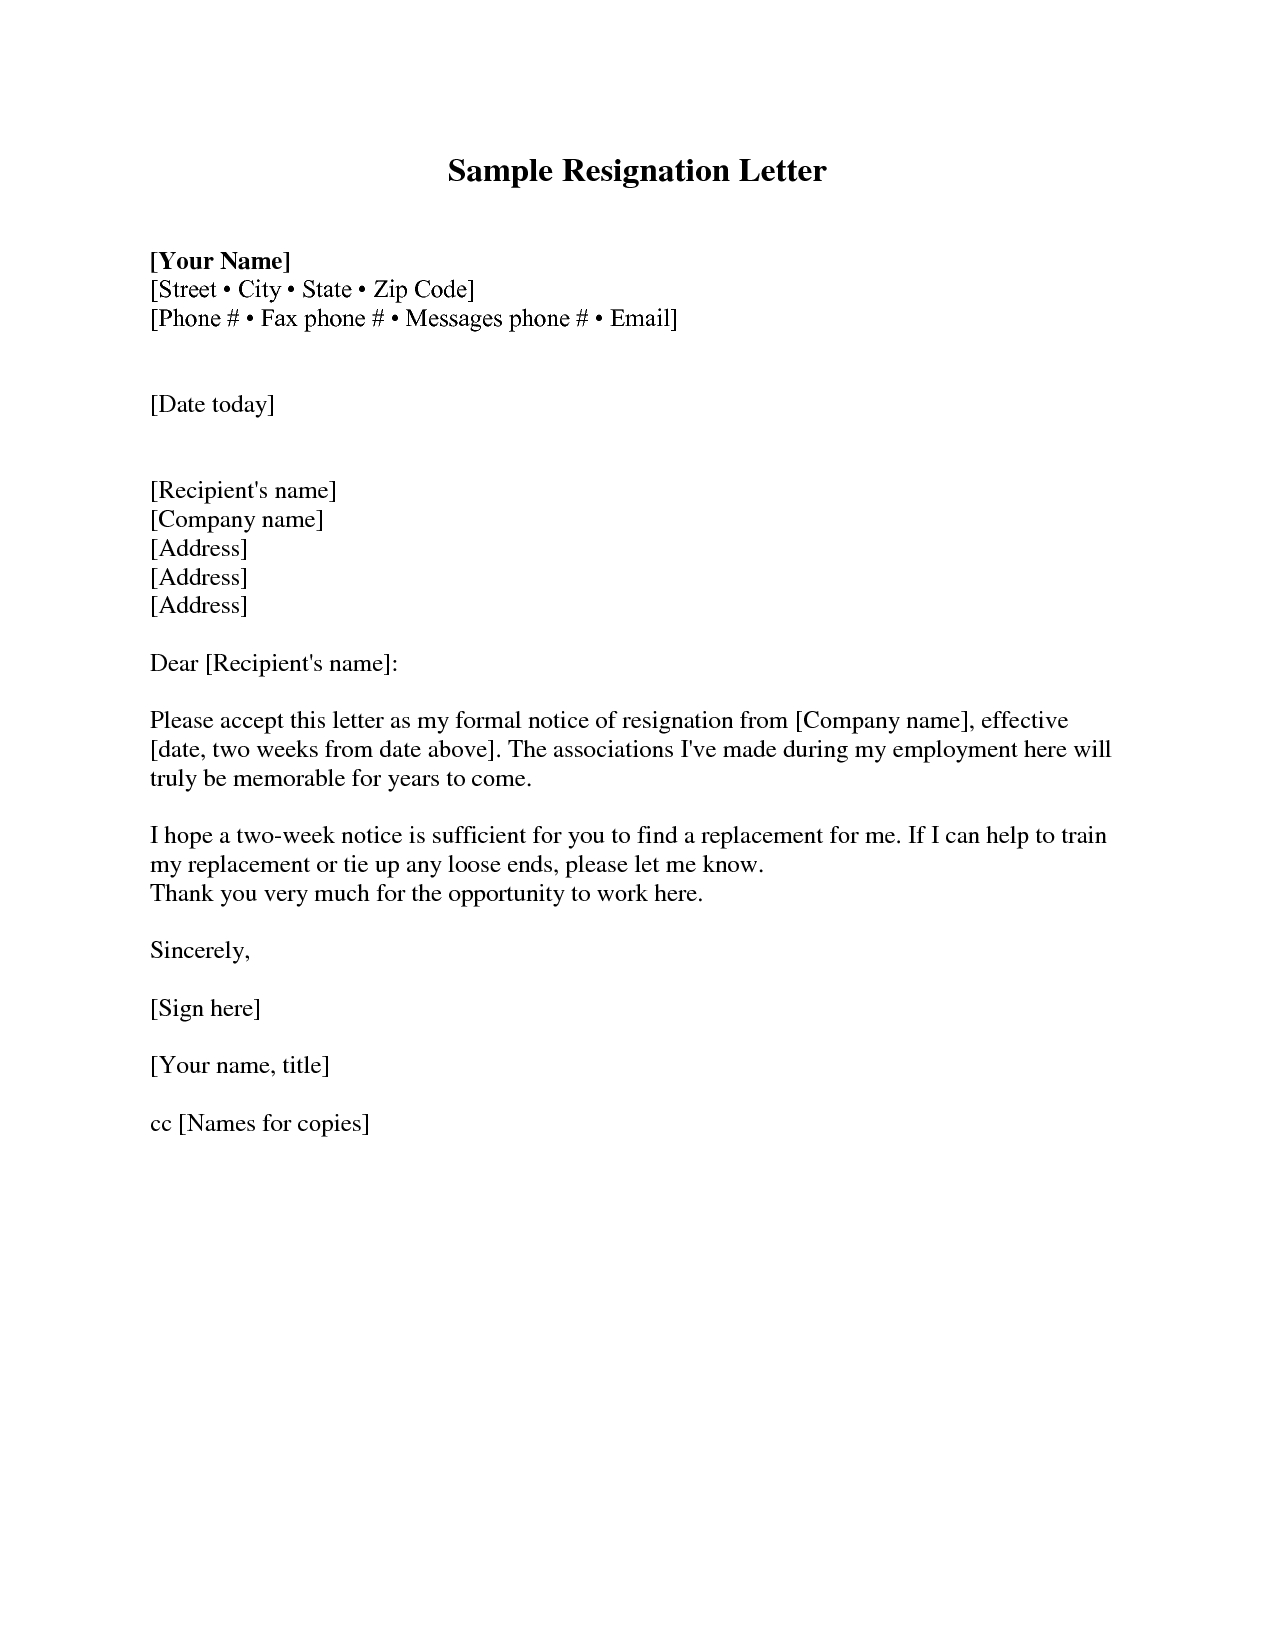 Official Letter Of Resignation Template - Resignation Letter Sample 2 Weeks Notice Free2img